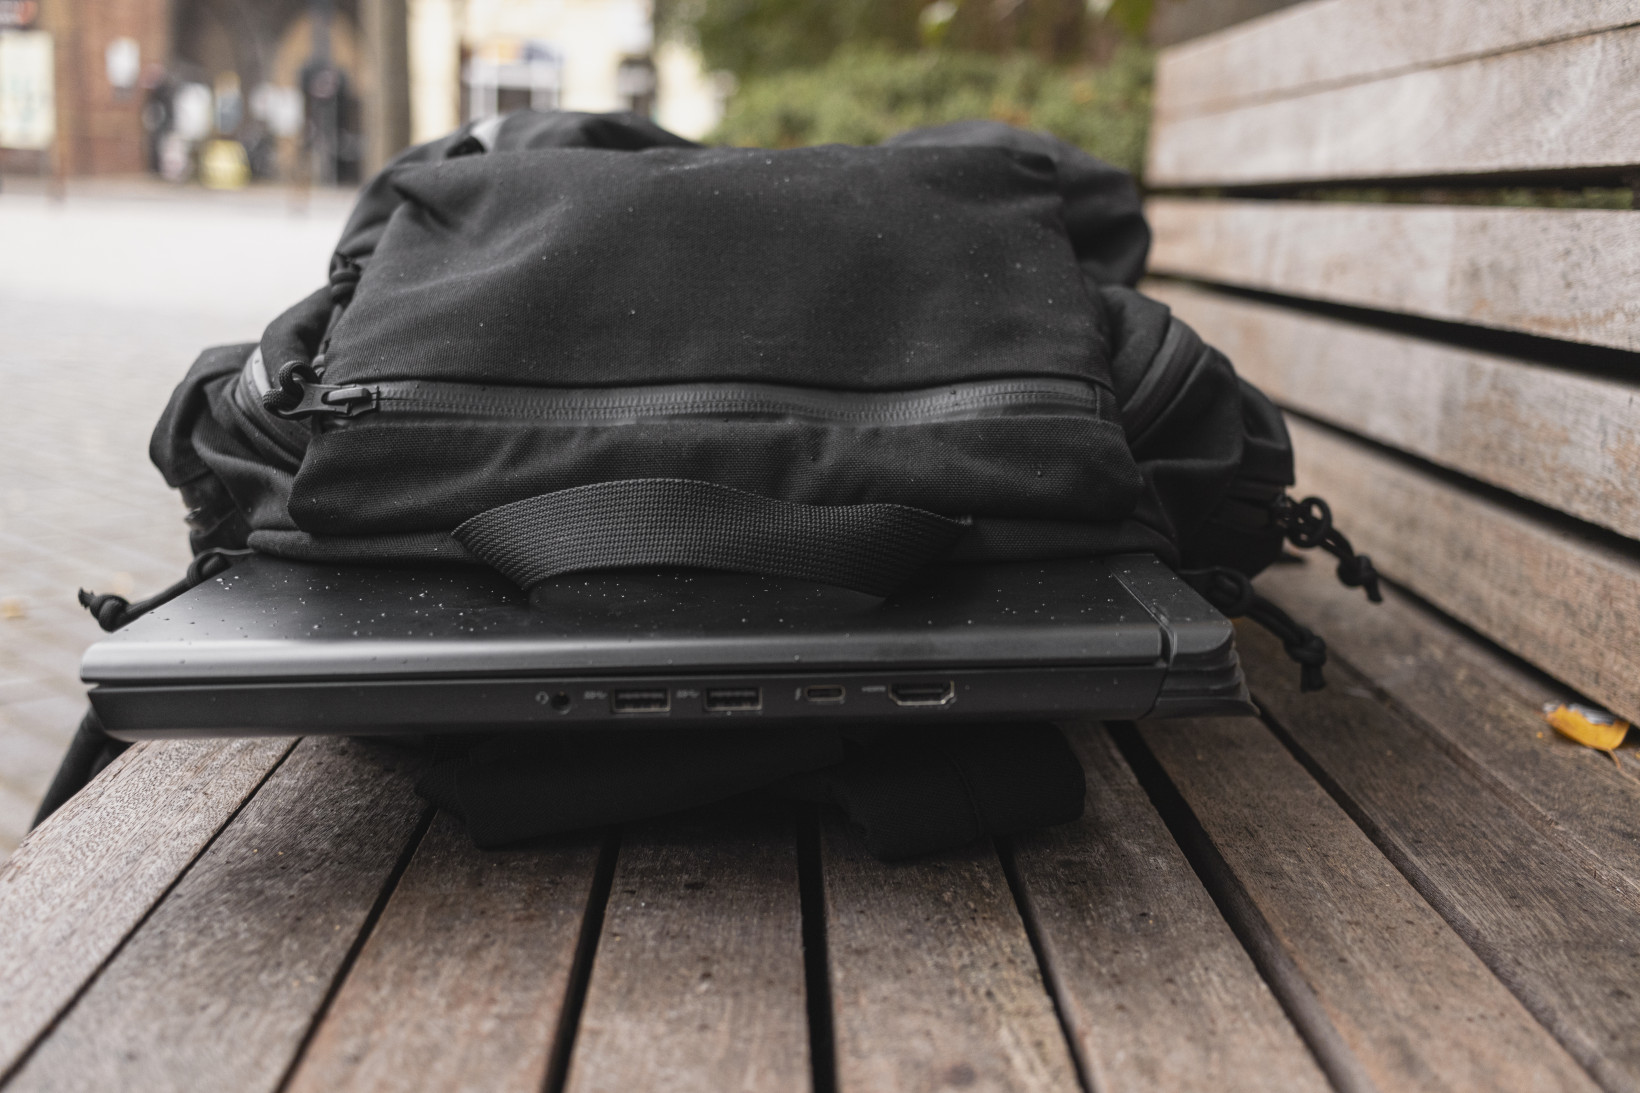 The A model backpack fits a hefty gaming laptop